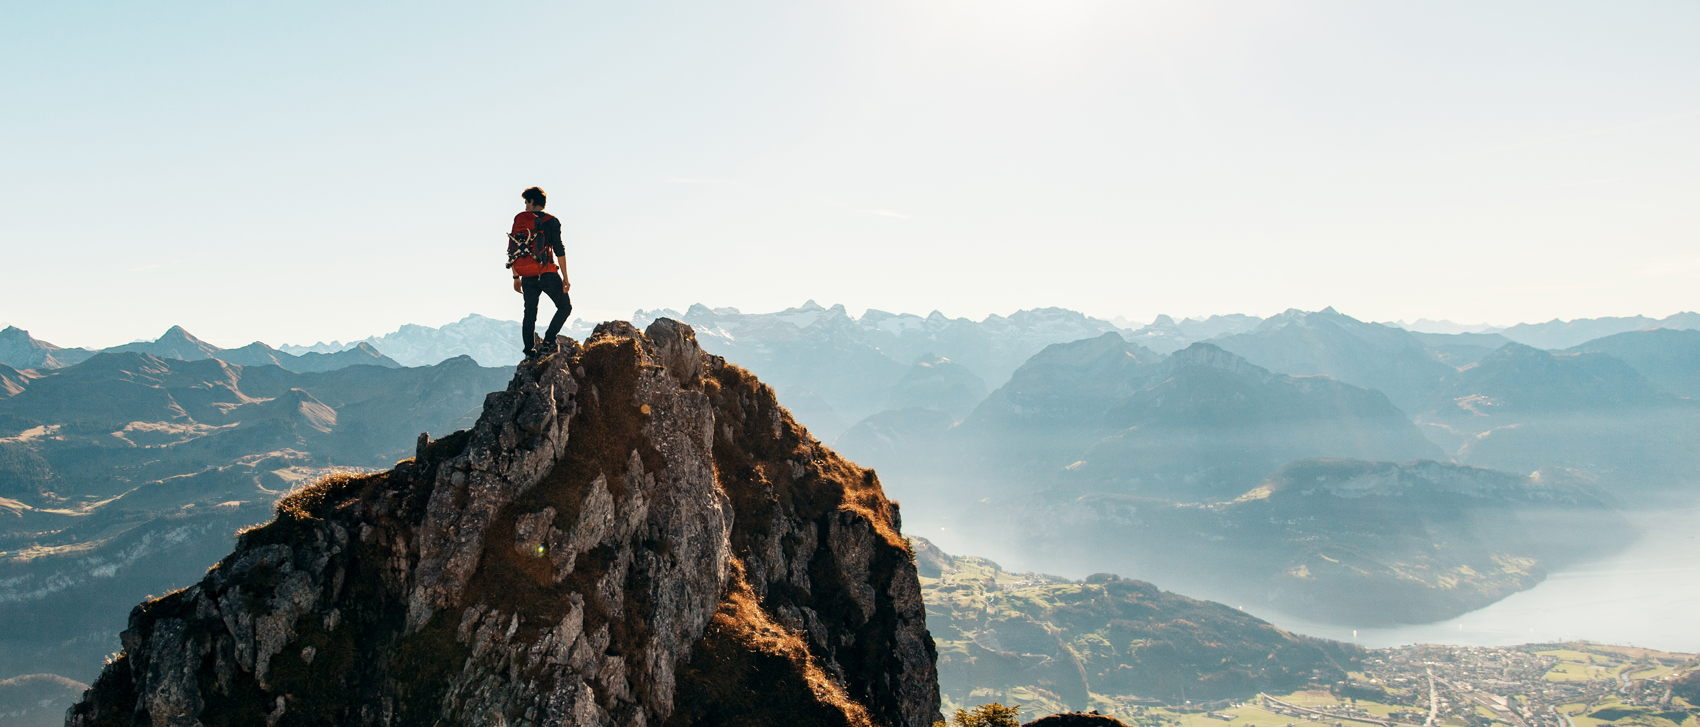 Try This Technique 11,000 Leaders Use to Understand Themselves Better